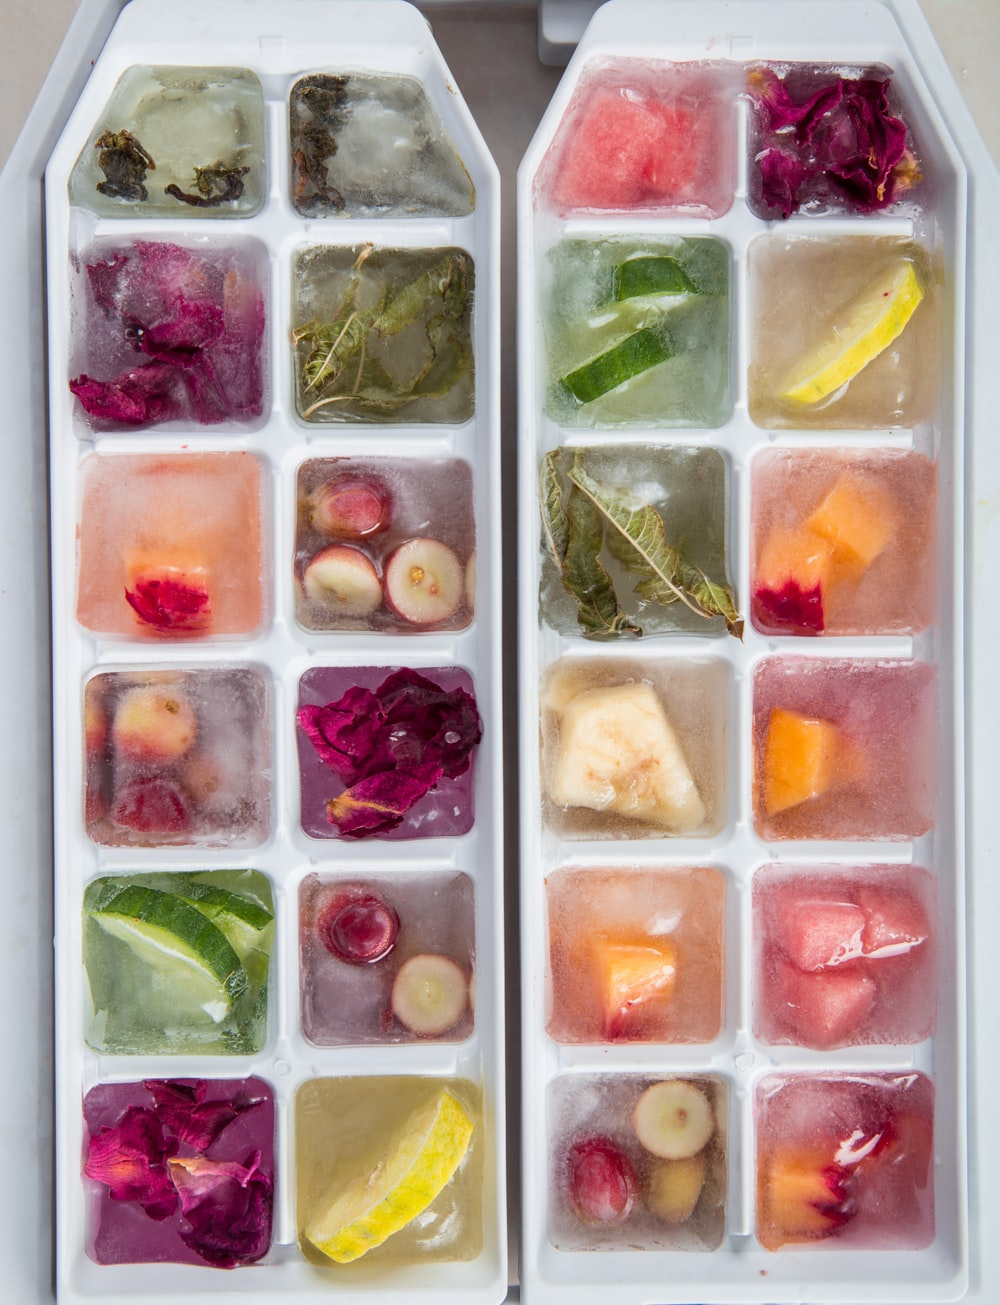 vegetable slices in ice cube molds